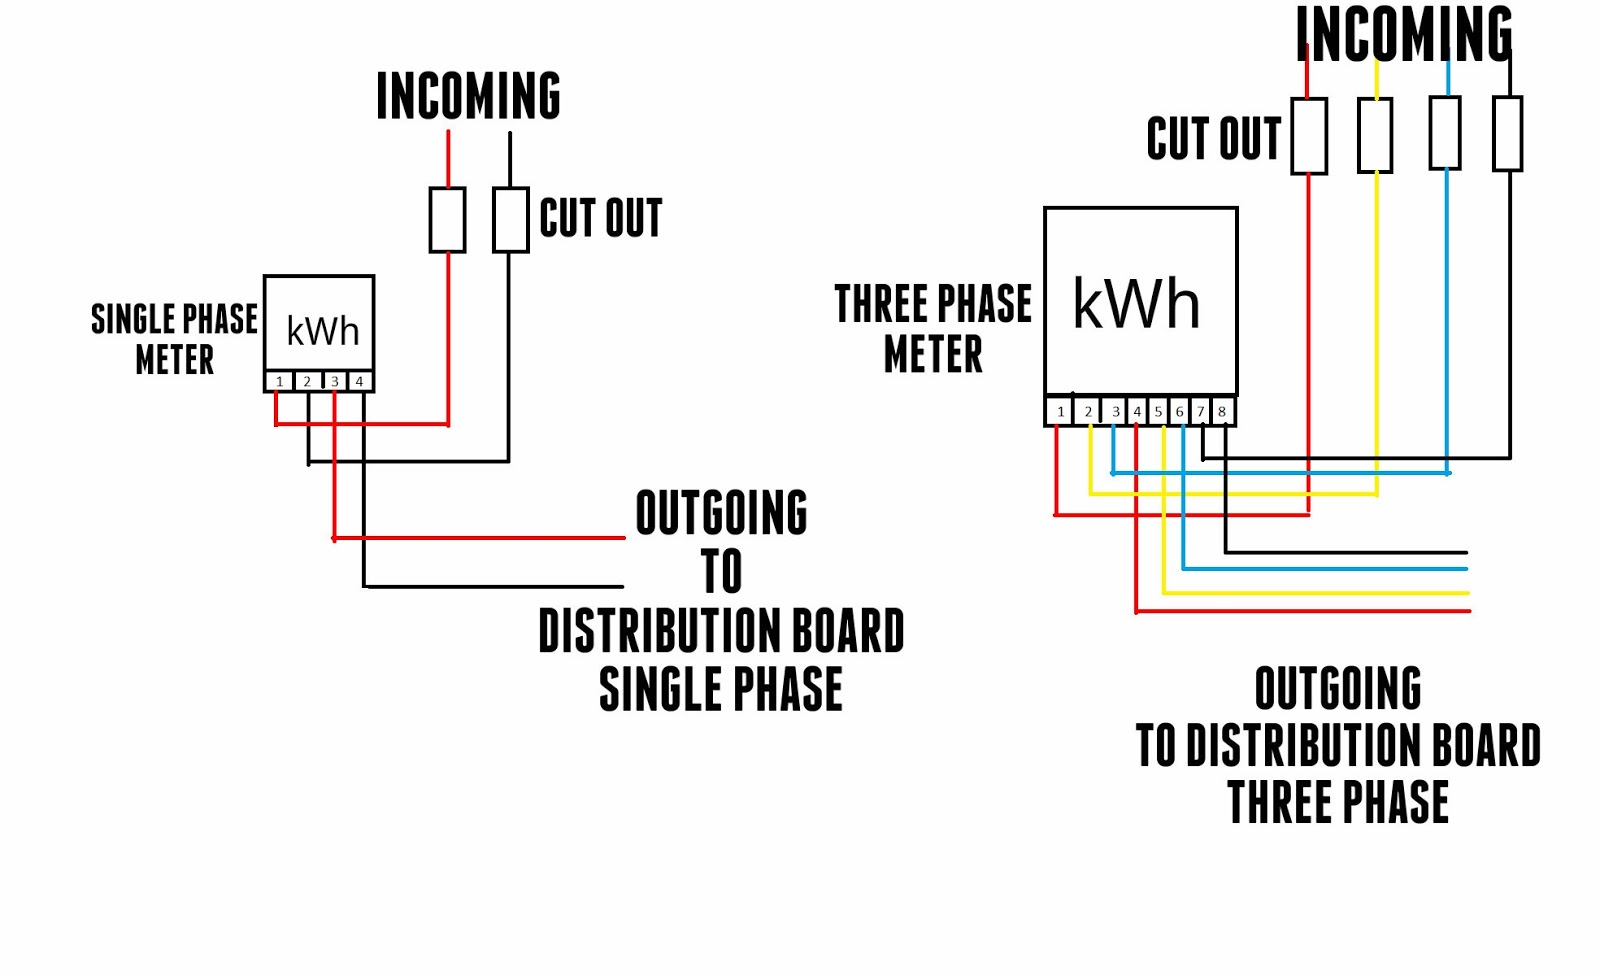 residential service panel meter wiring diagram the world through electricity: kilo watt hour meter (kwh ... minute meter wiring diagram